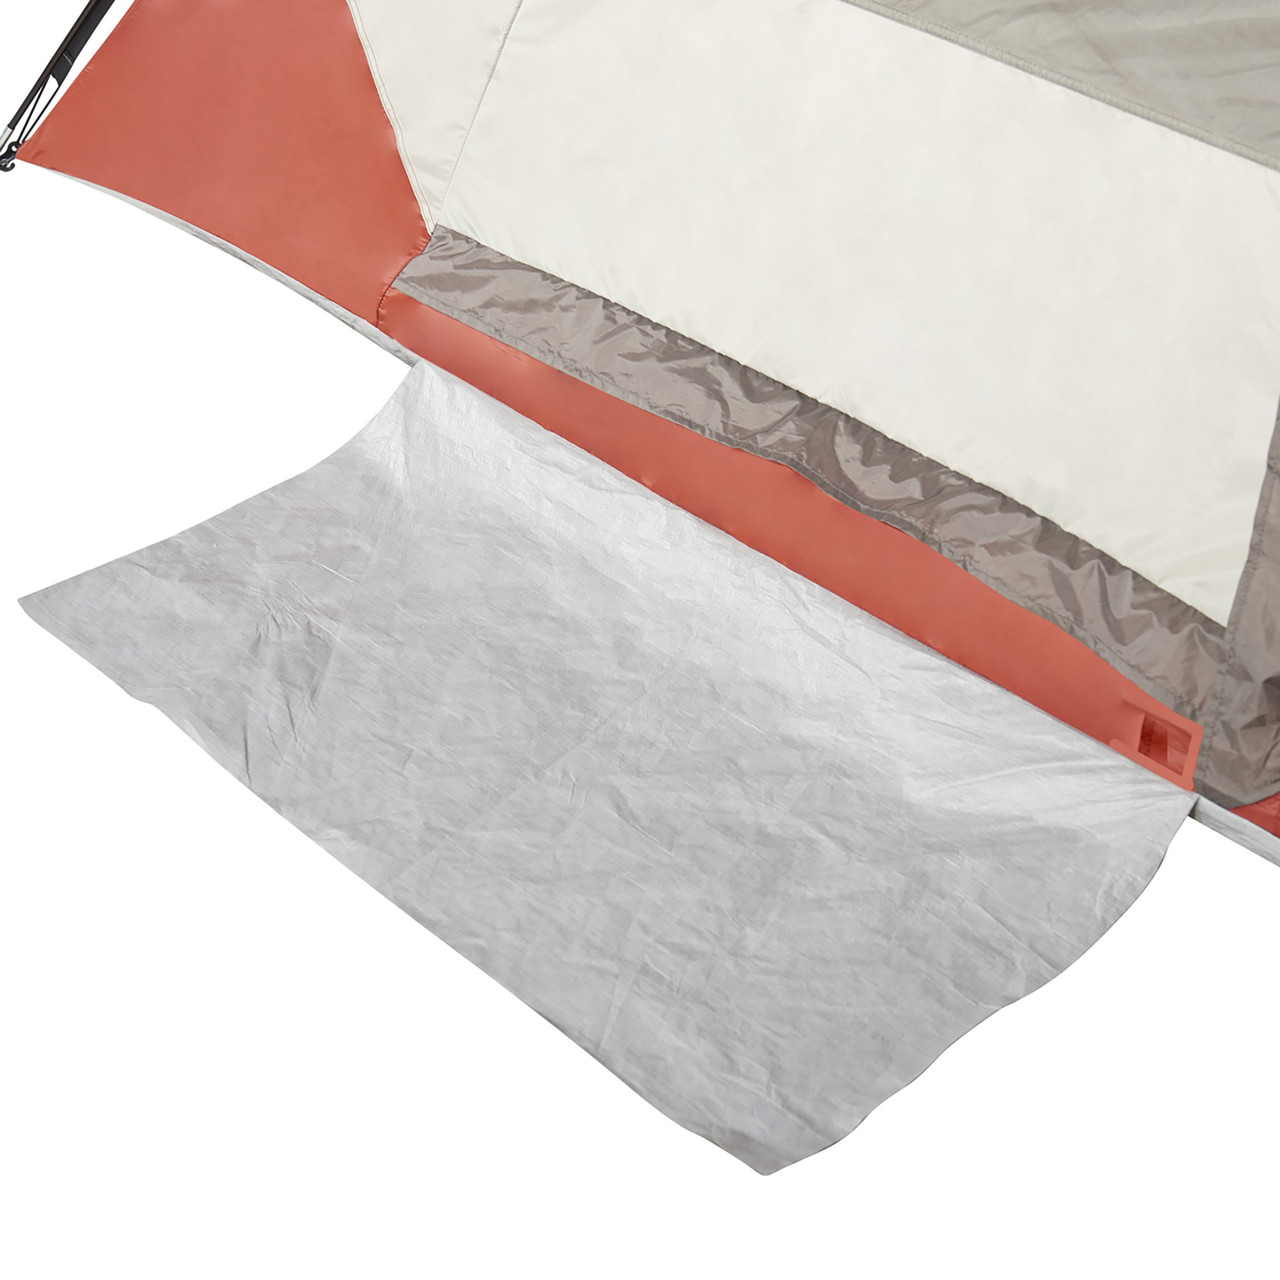 Close up of Wenzel Torry 2 Person Dome Tent, showing floor mat